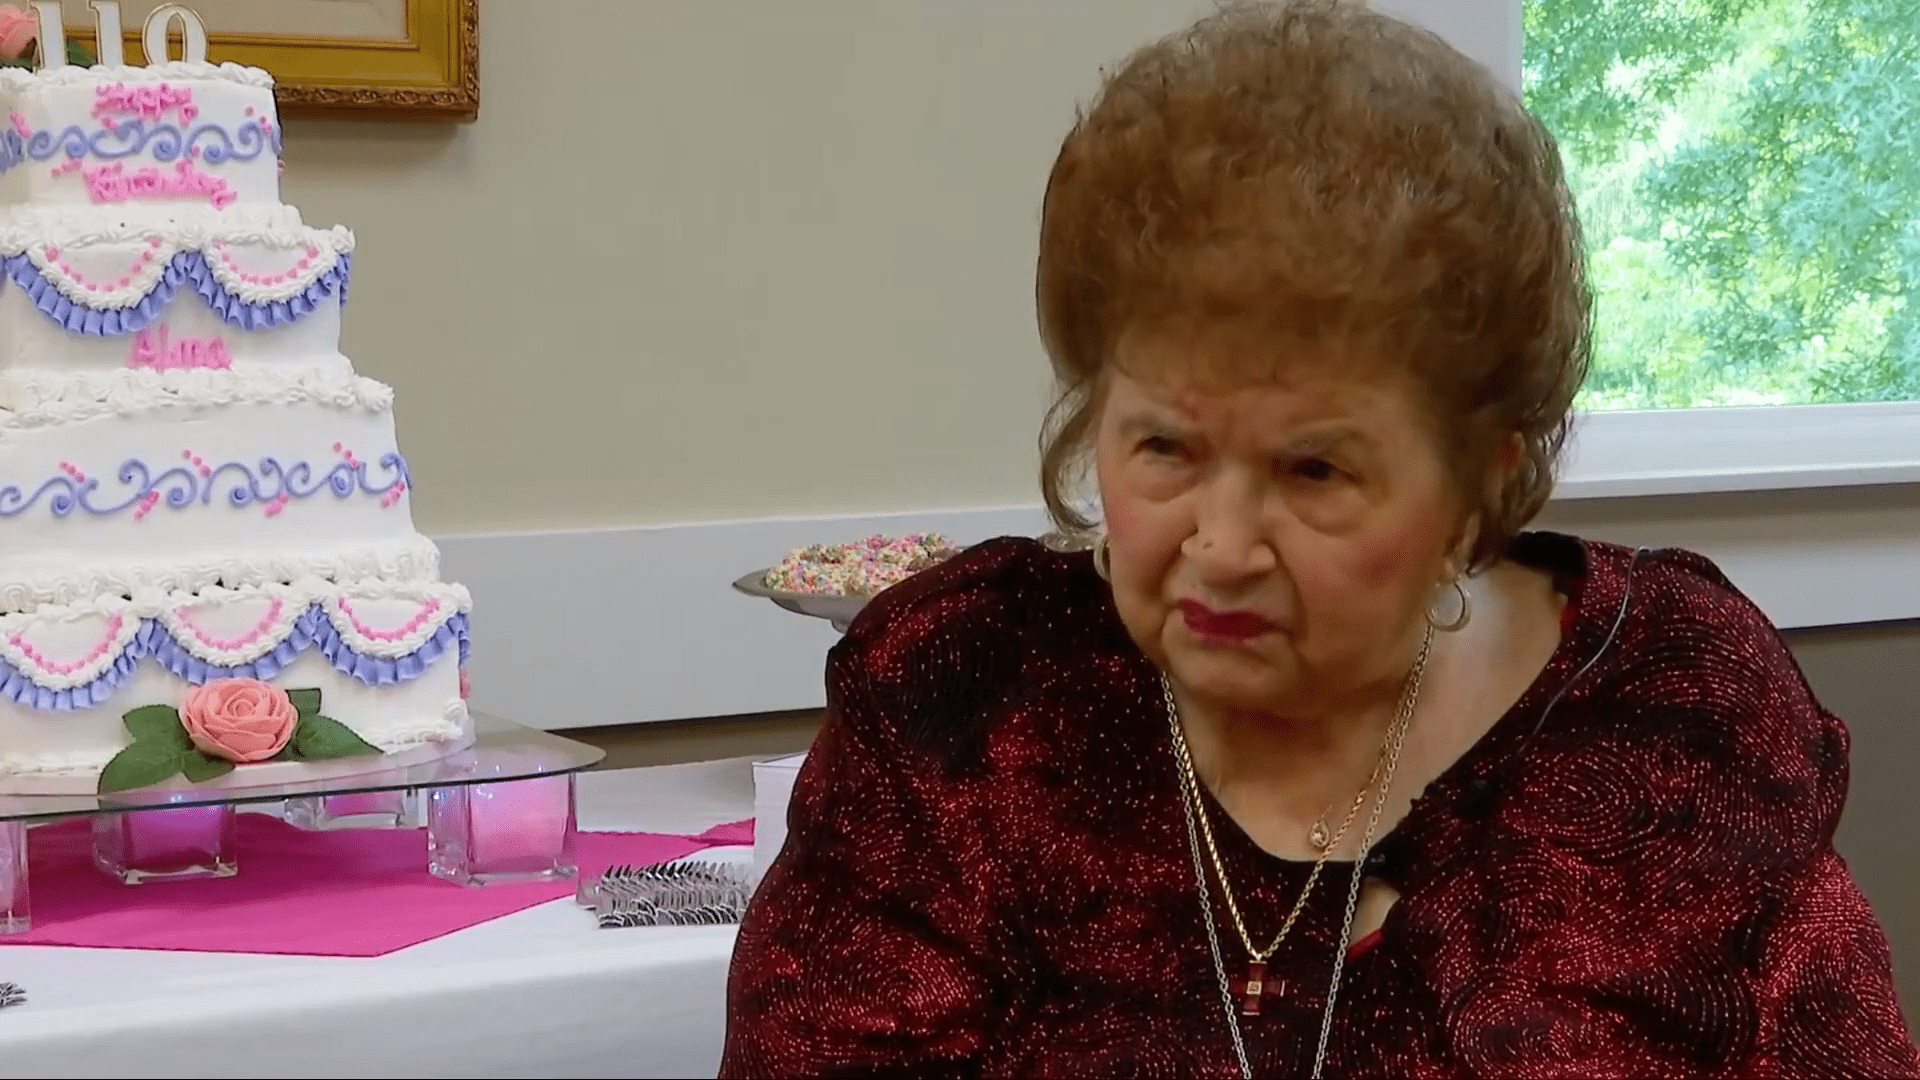 110-year-old Alma Kahl dressed in red and sitting next to her birthday cake.   Source: WOWK 13 News